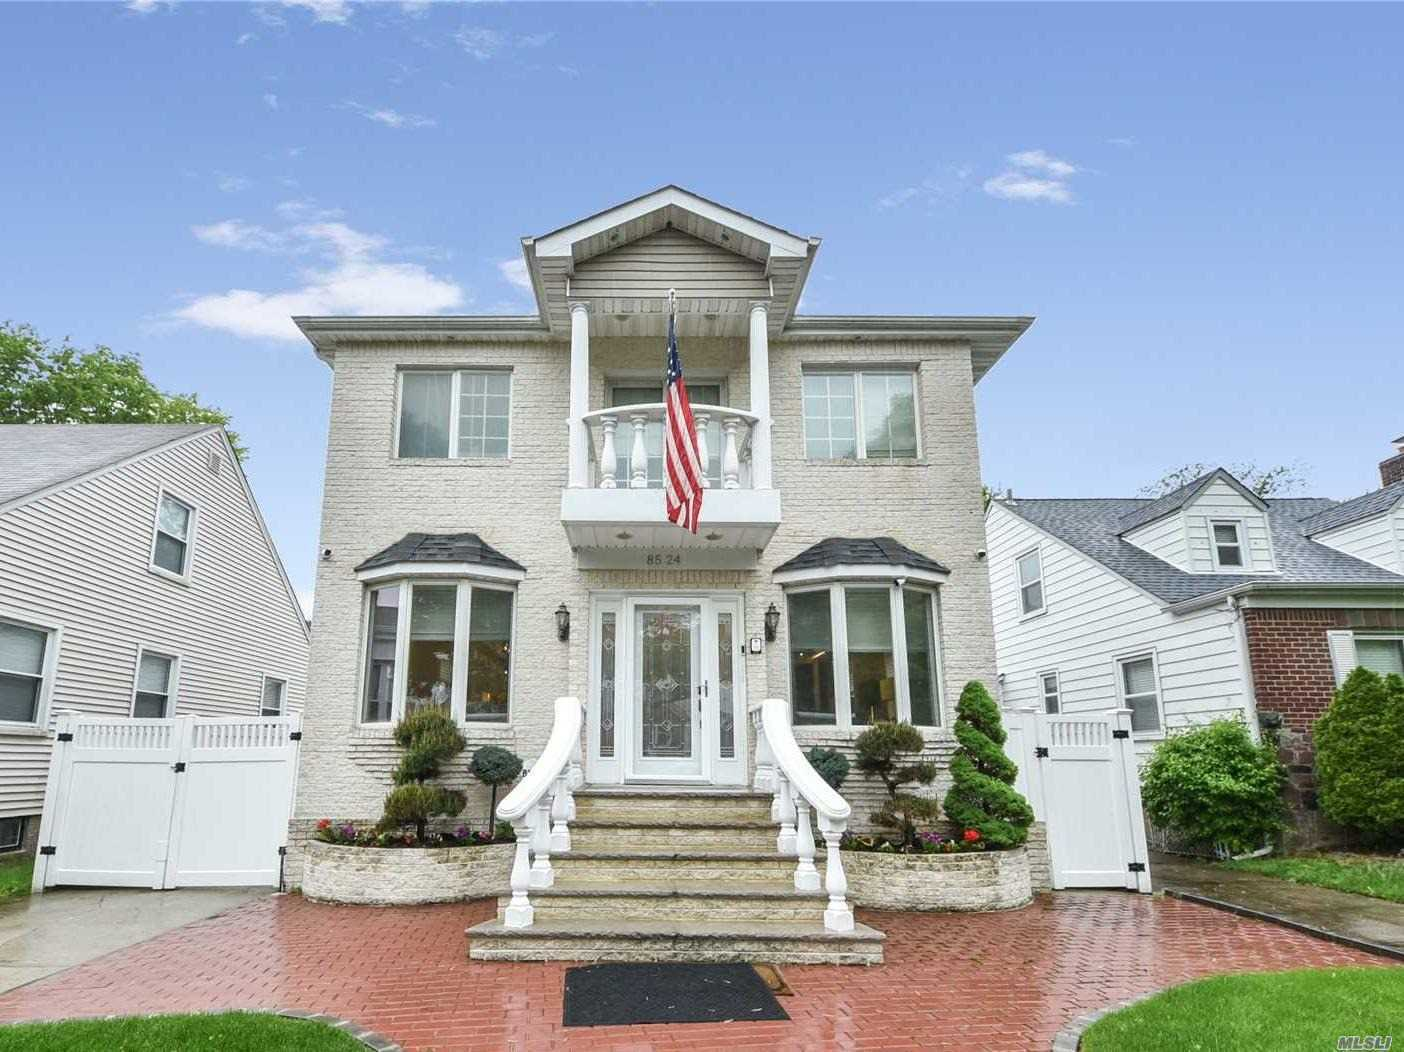 Photo of home for sale at 85-24 250th St, Bellerose NY